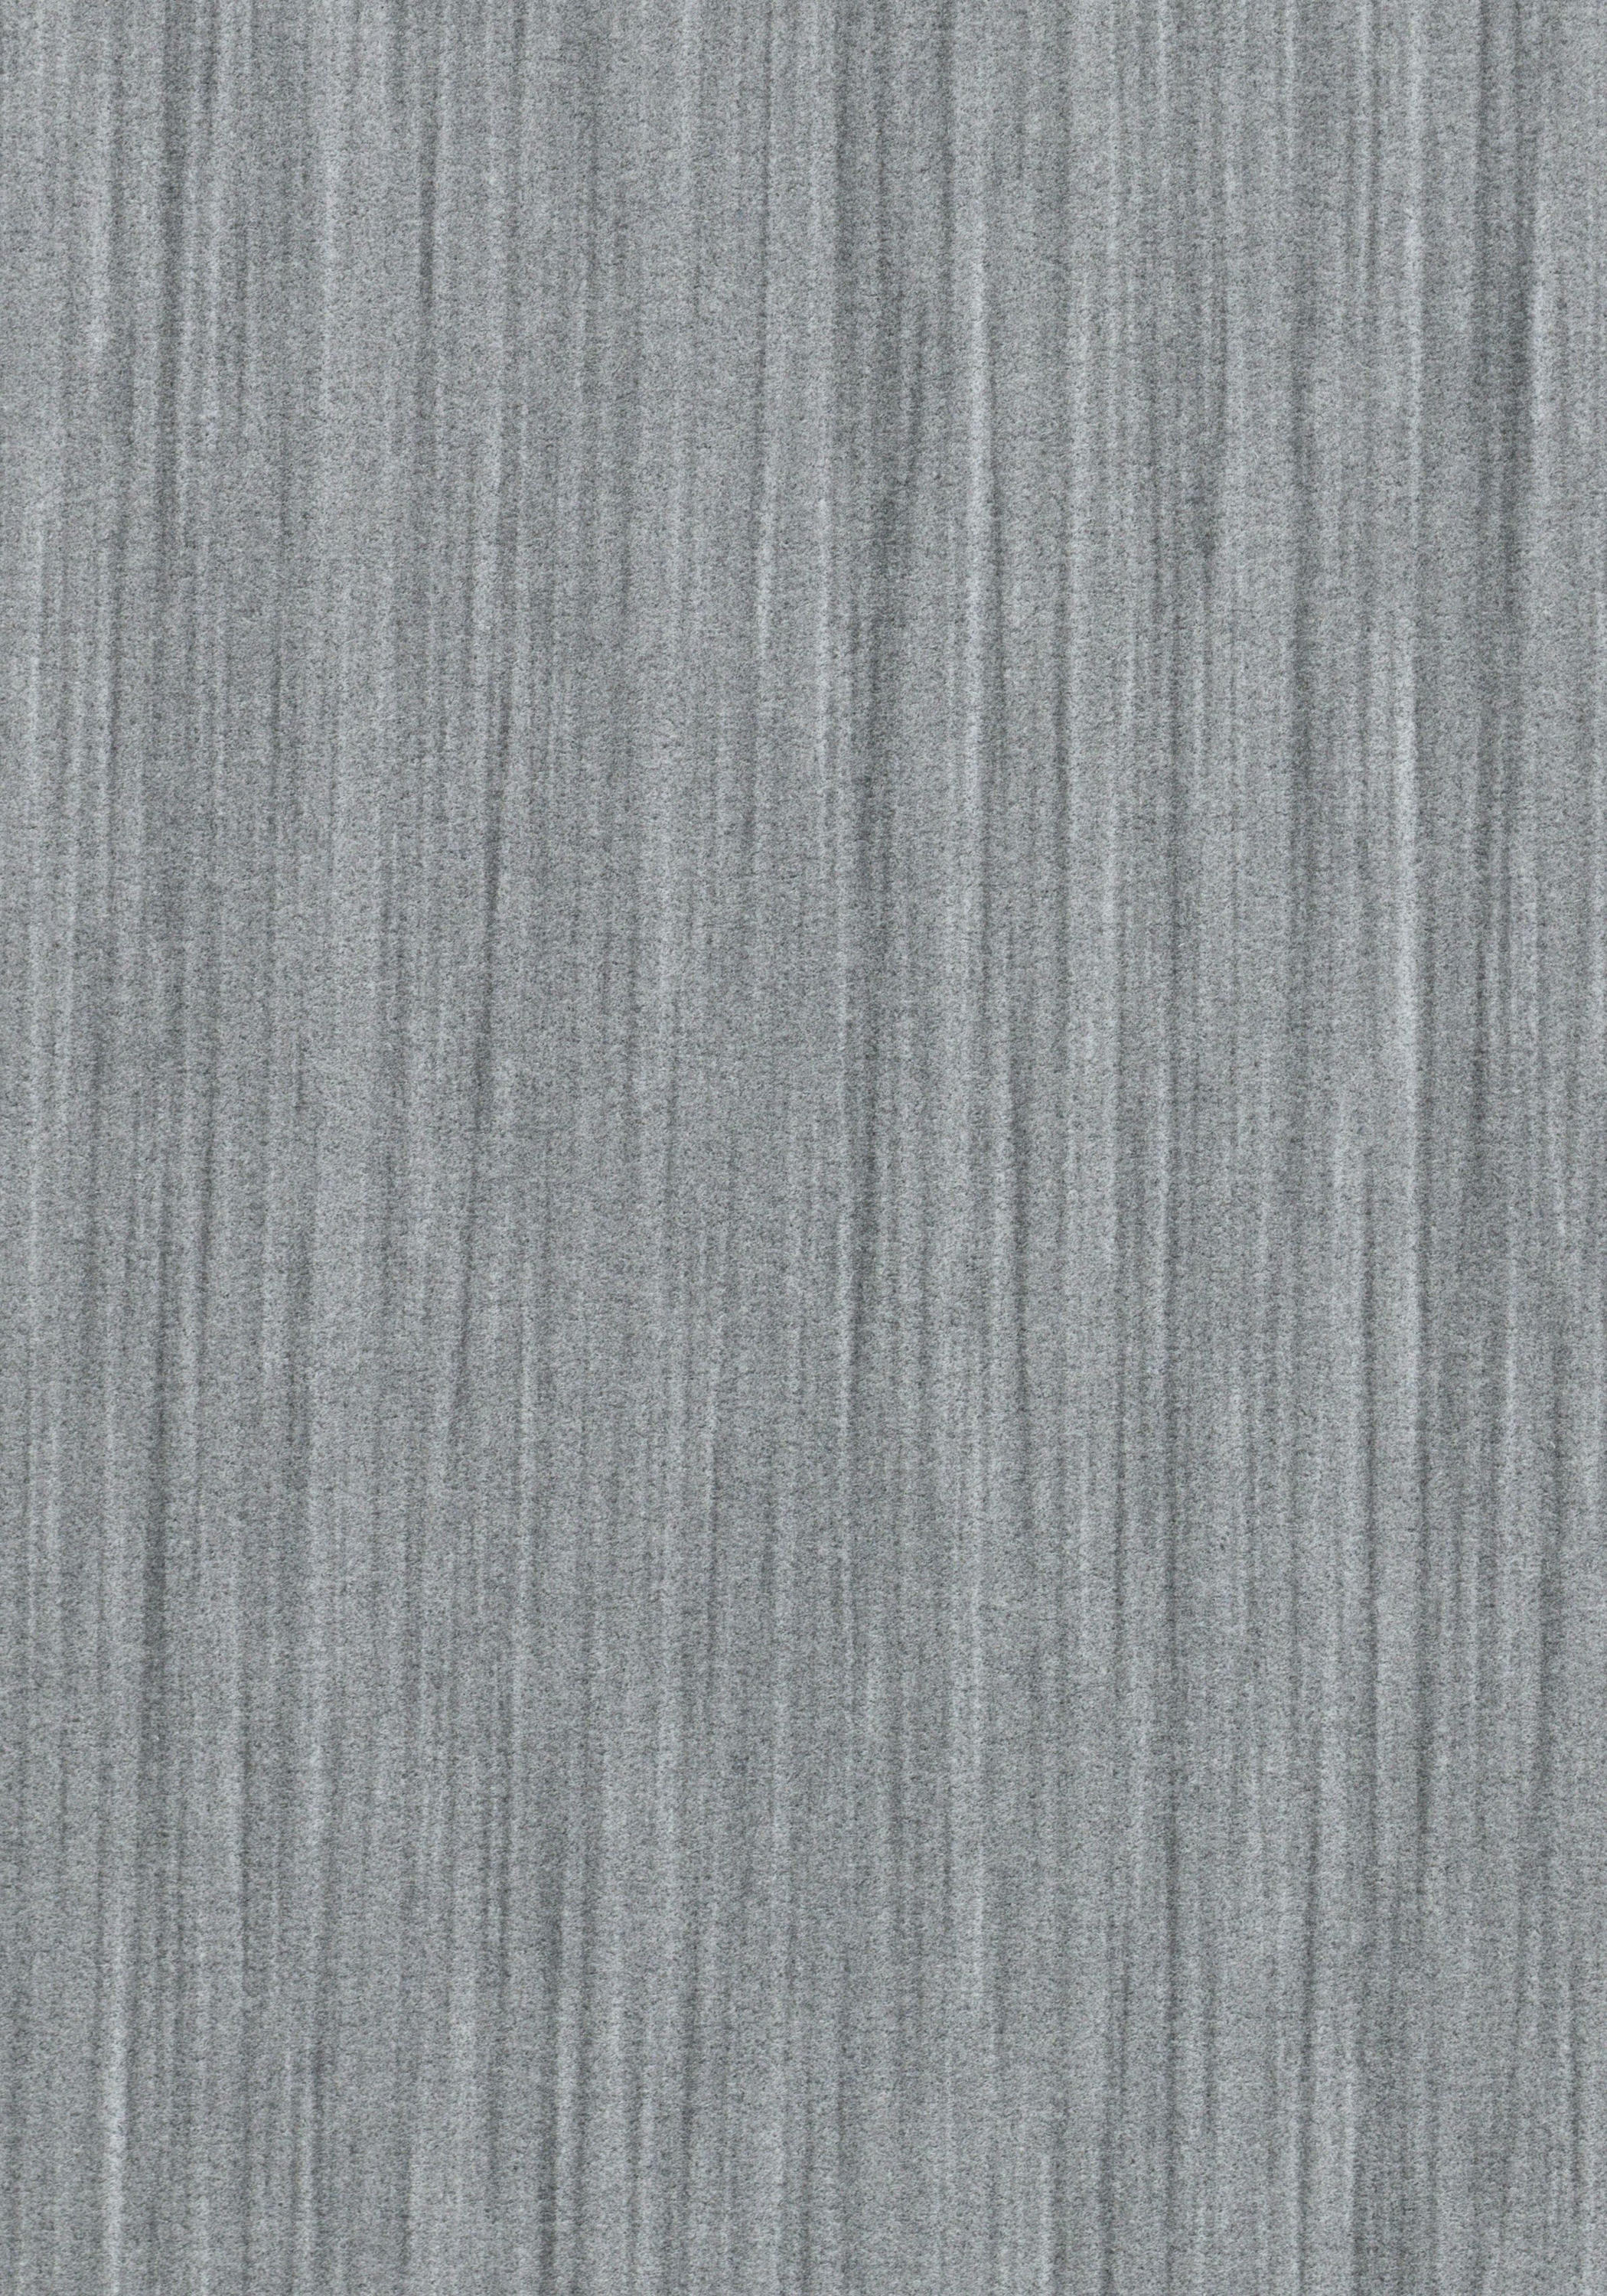 Flotex Planks Seagrass Pearl Carpet Tiles From Forbo